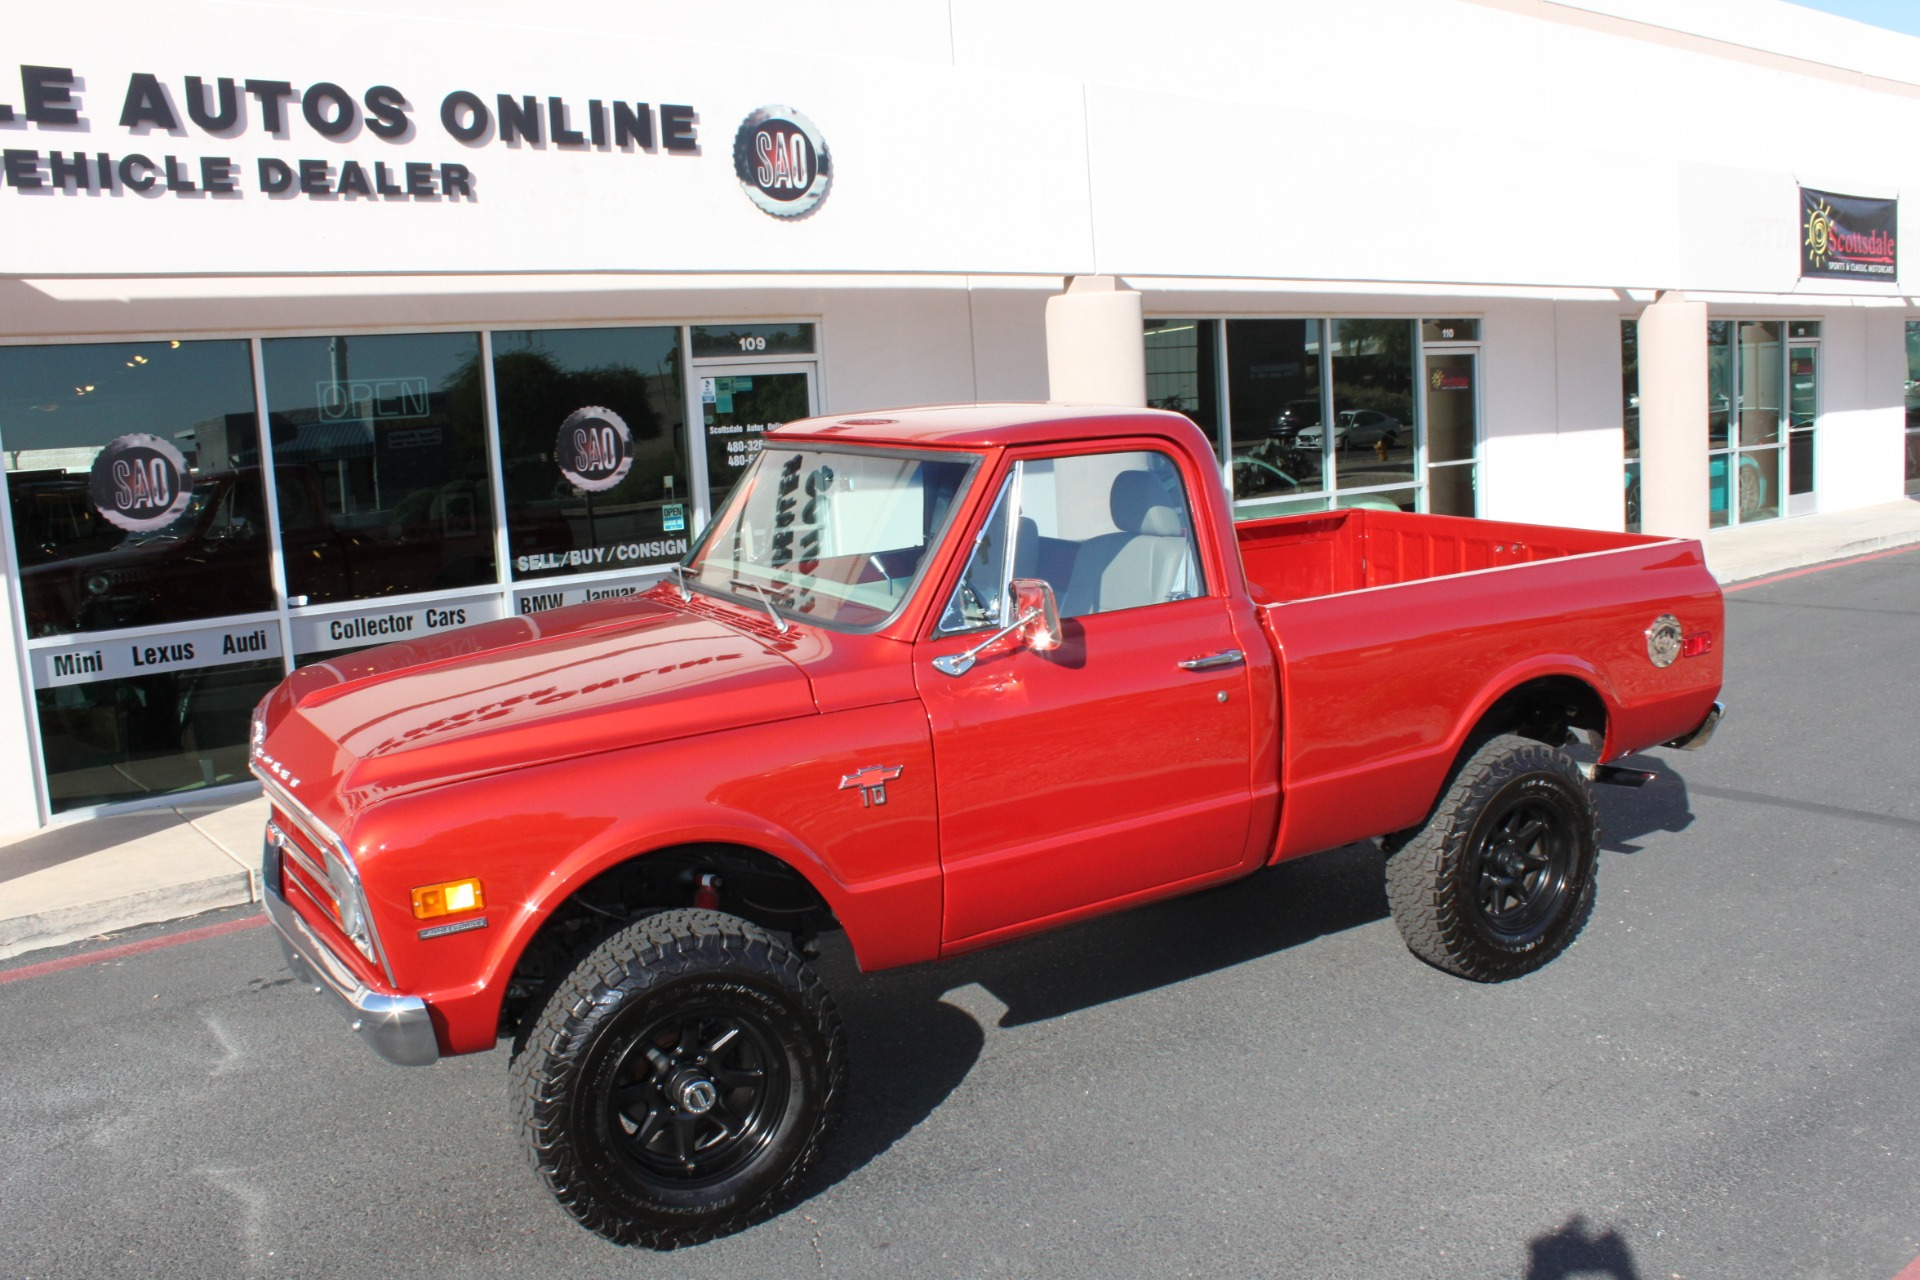 Used-1968-Chevrolet-K10-(C10)-1/2-Ton-Short-Bed-4X4-LS430